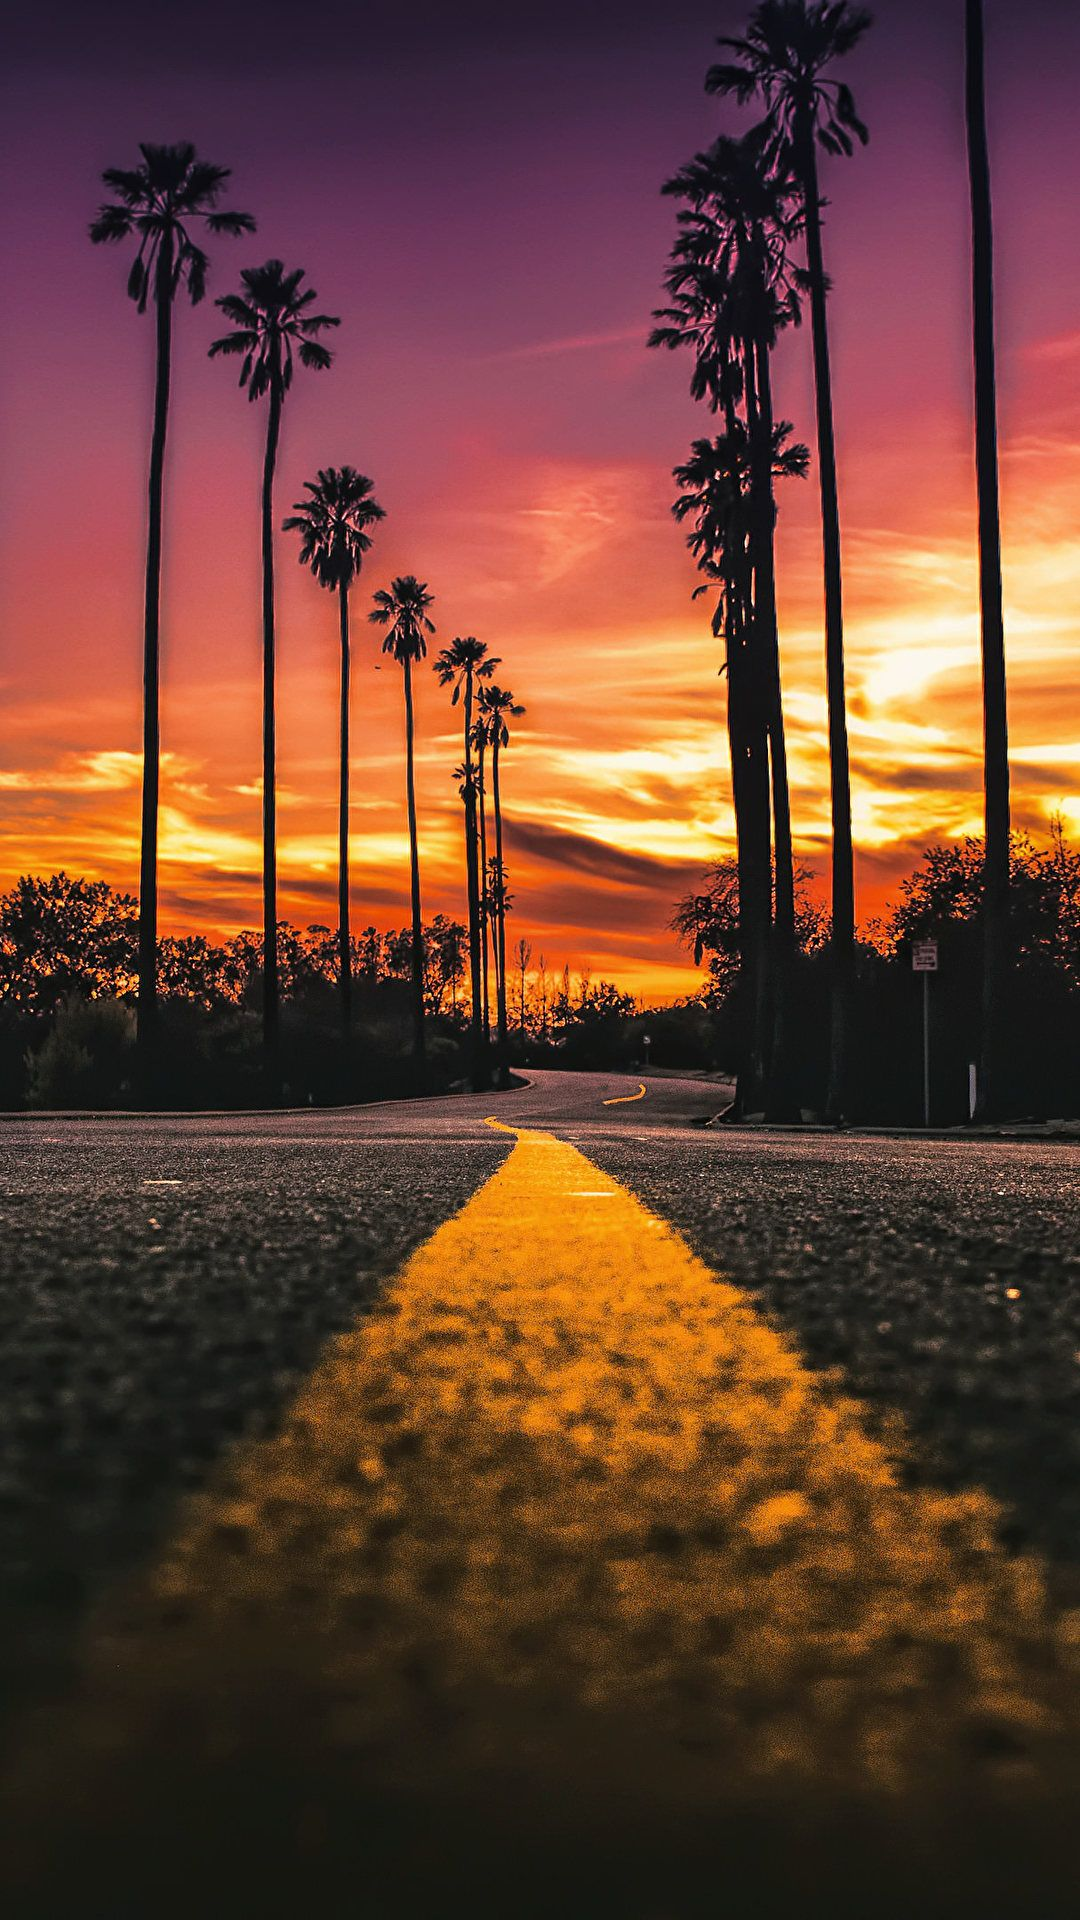 California Street View [1080x1920] Landscape photography